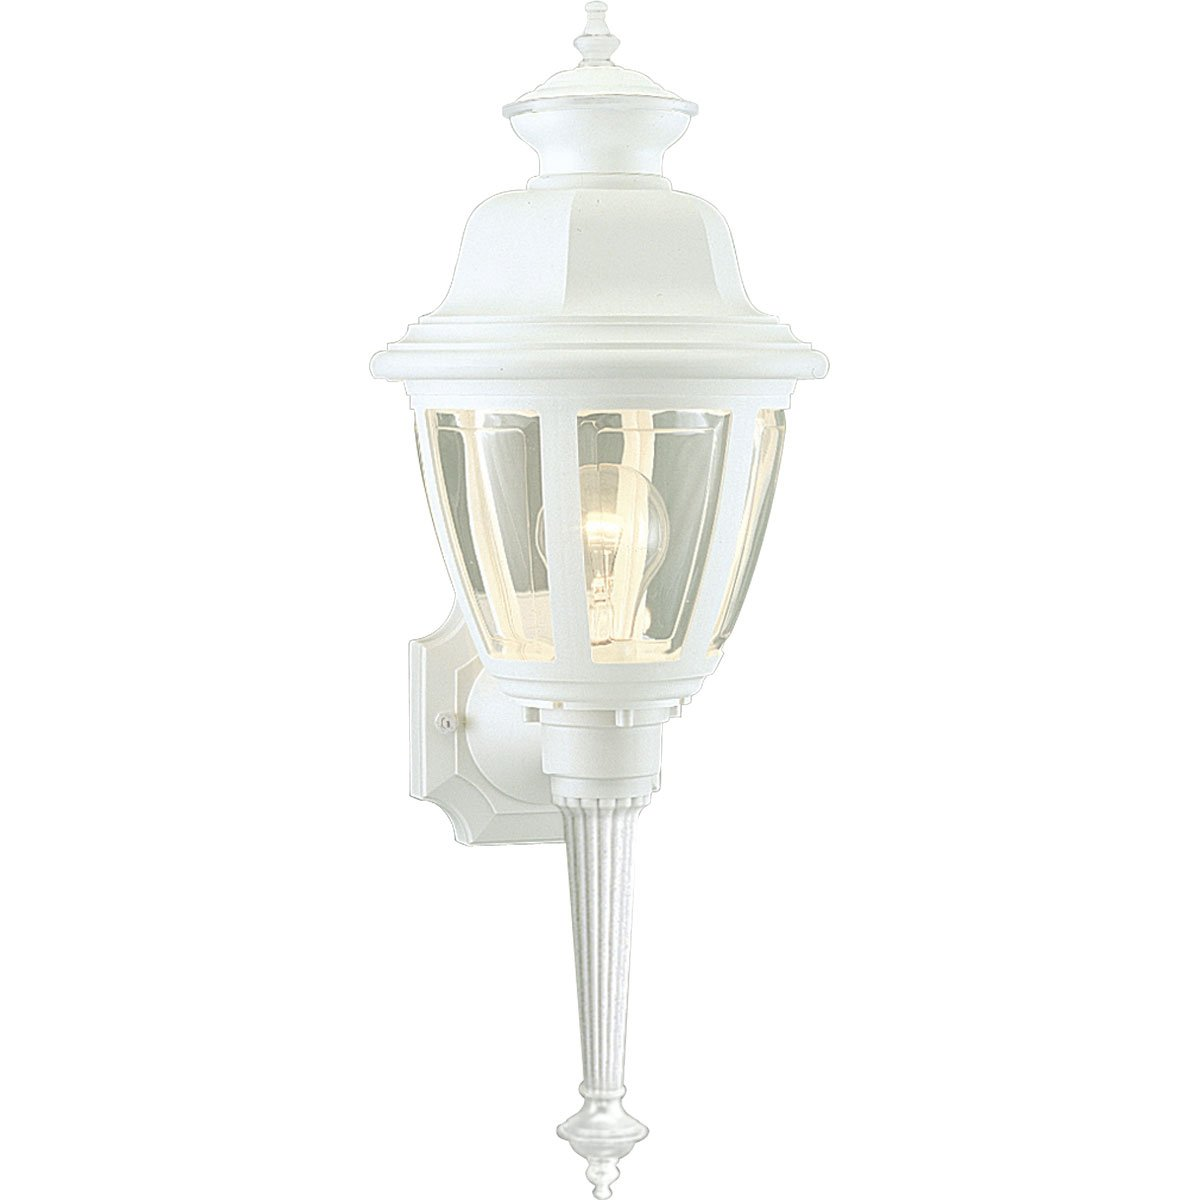 8-Inch Width x 21-Inch Height Progress Lighting P5738-30 Traditional One Light Wall Lantern from Non-Metallic Incandescent Collection in White Finish